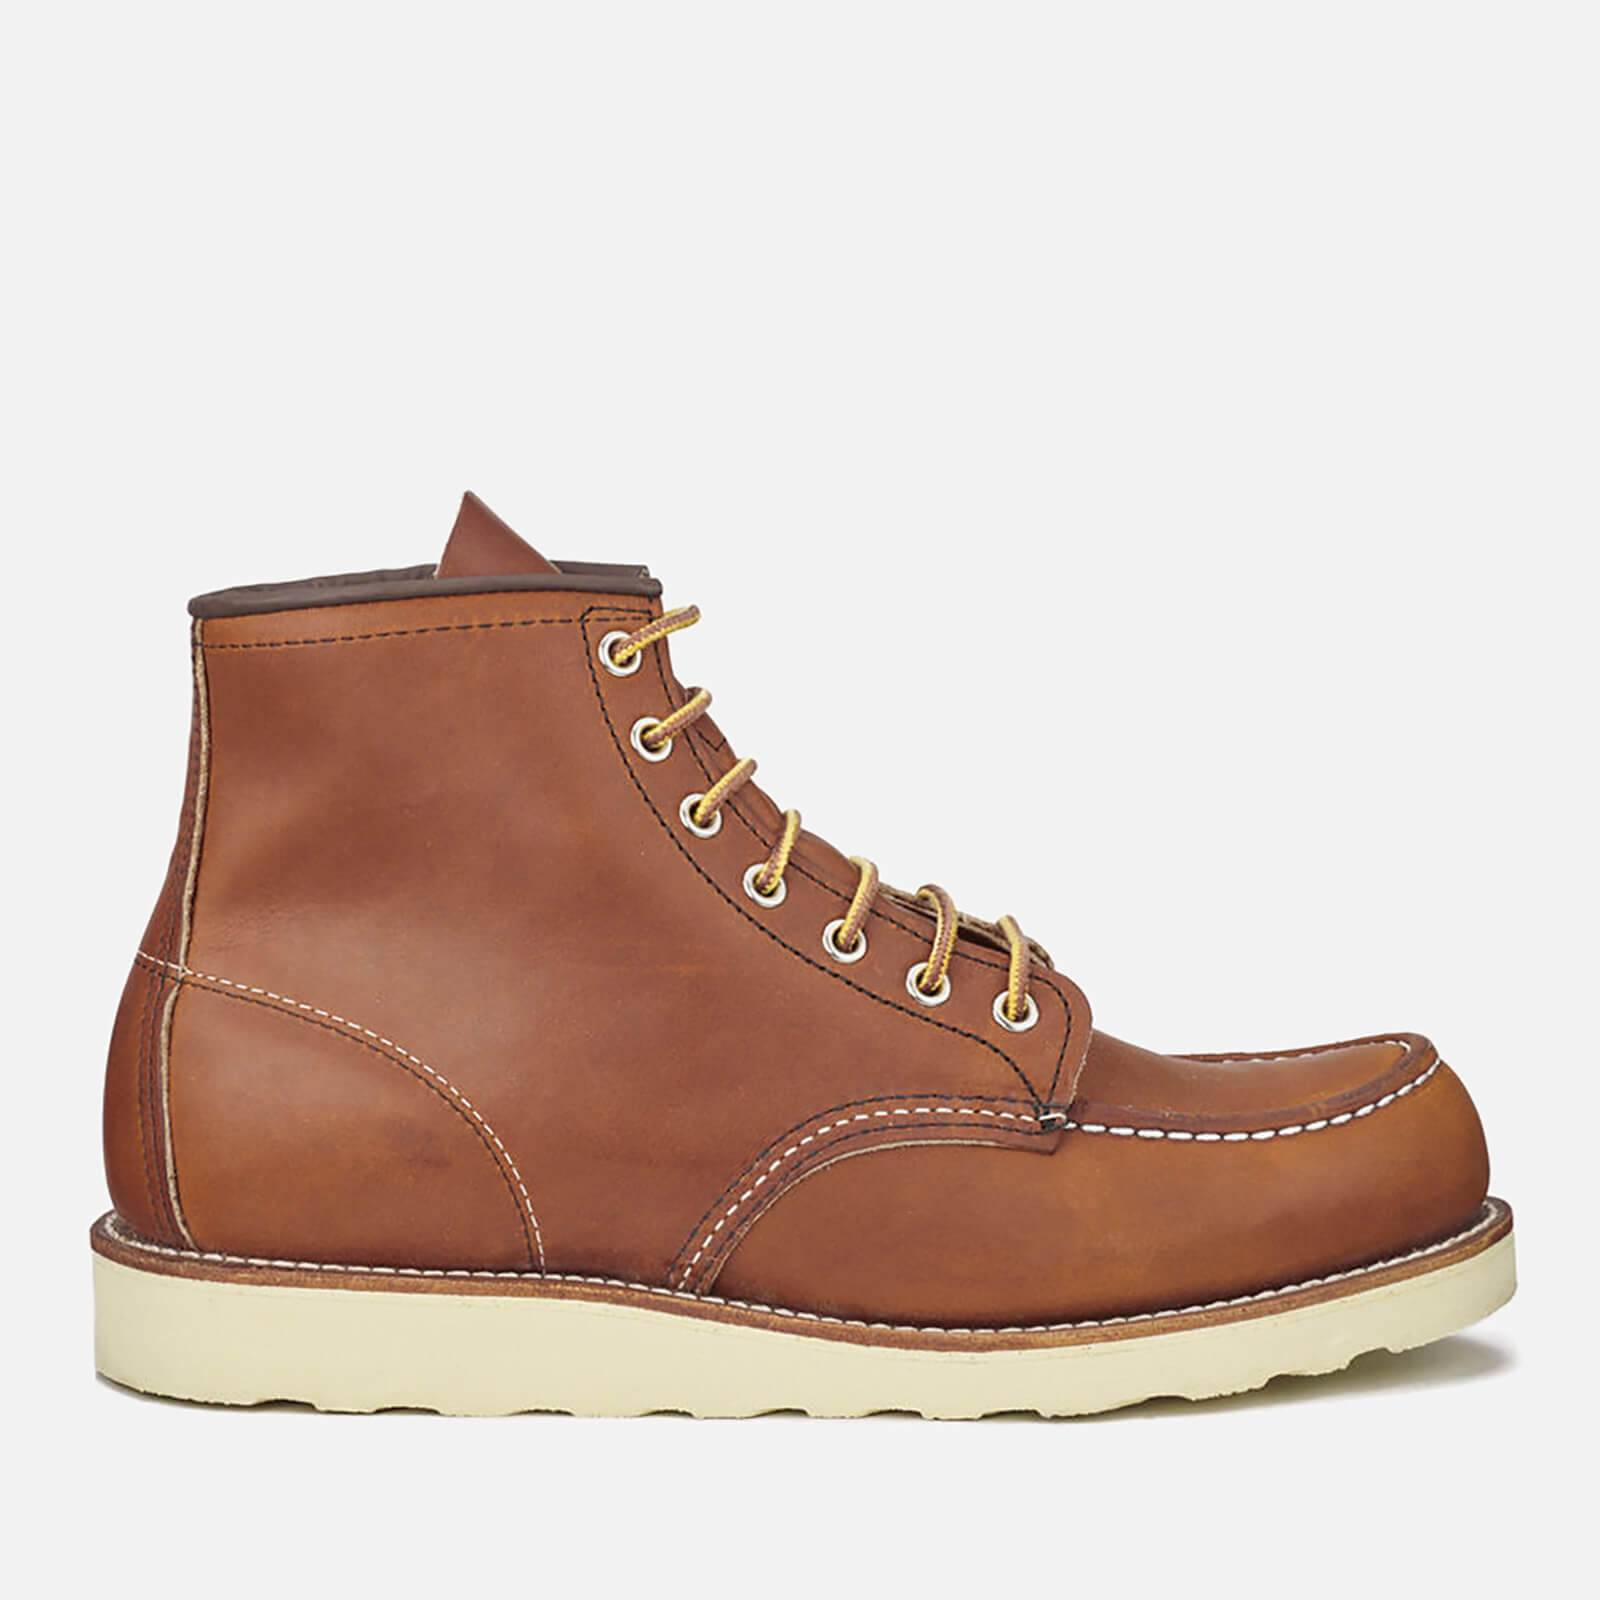 Red Wing Men's 6 Inch Moc Toe Leather Lace Up Boots - Oro Legacy - UK 9/US 10